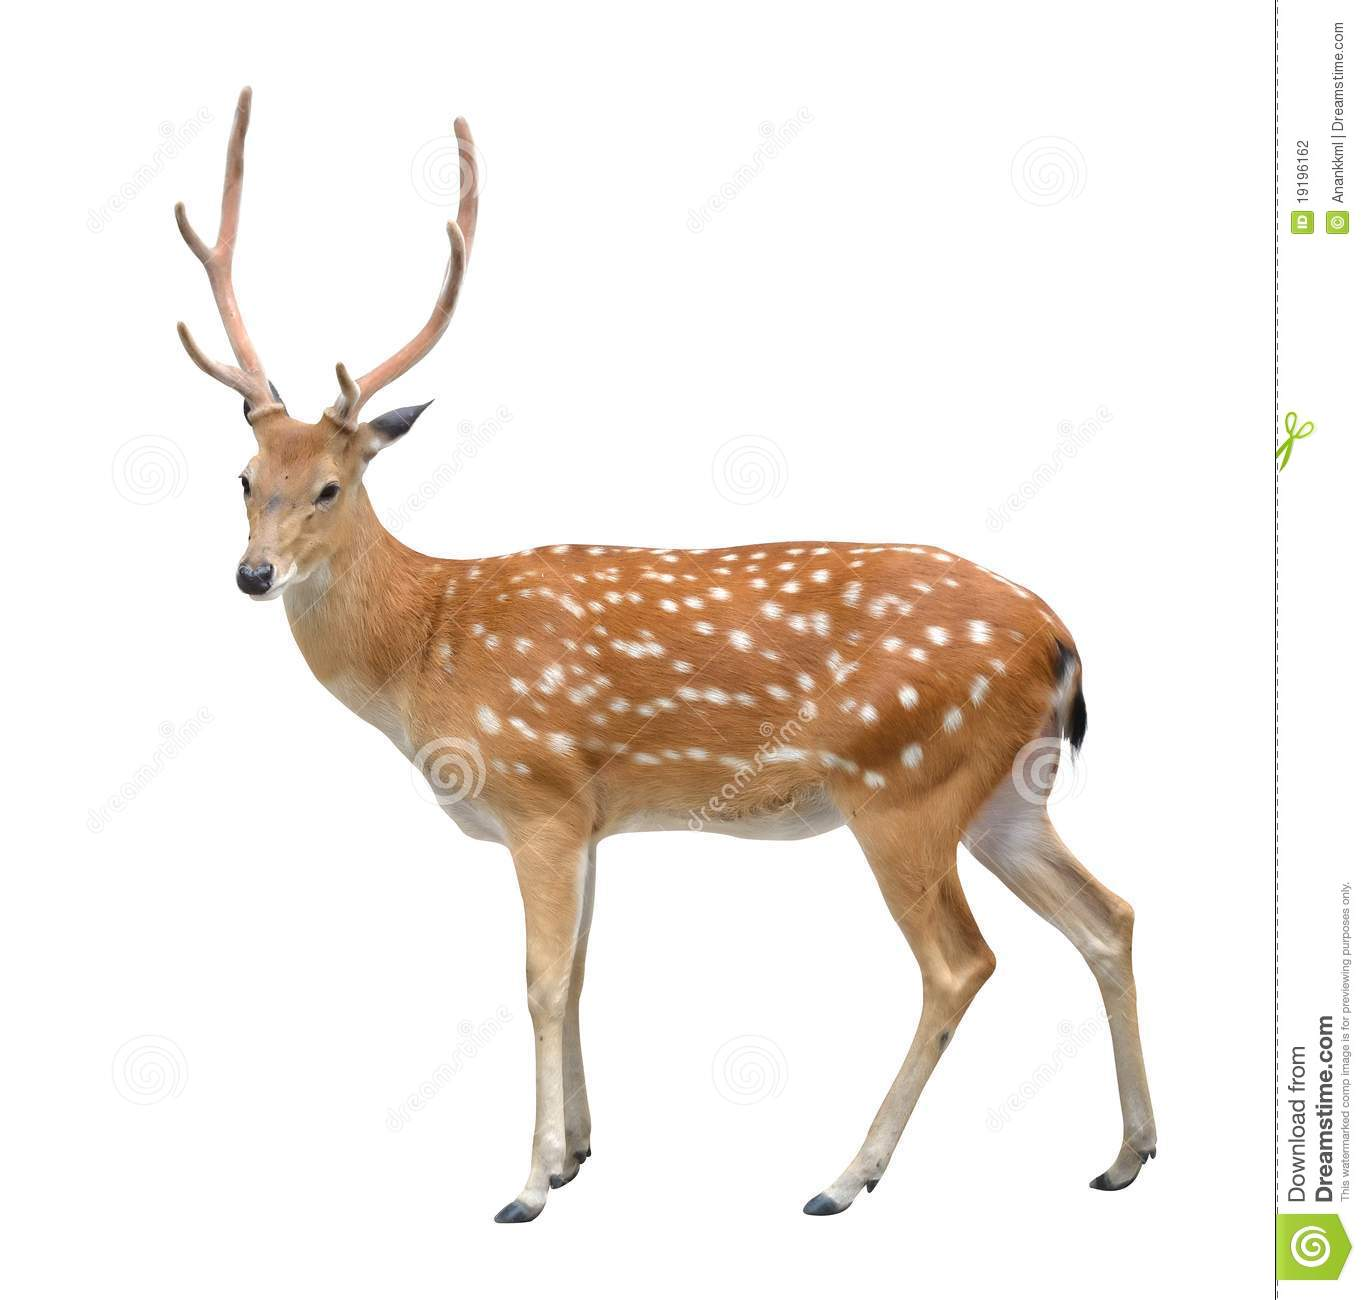 Deer Pictures Kids Search